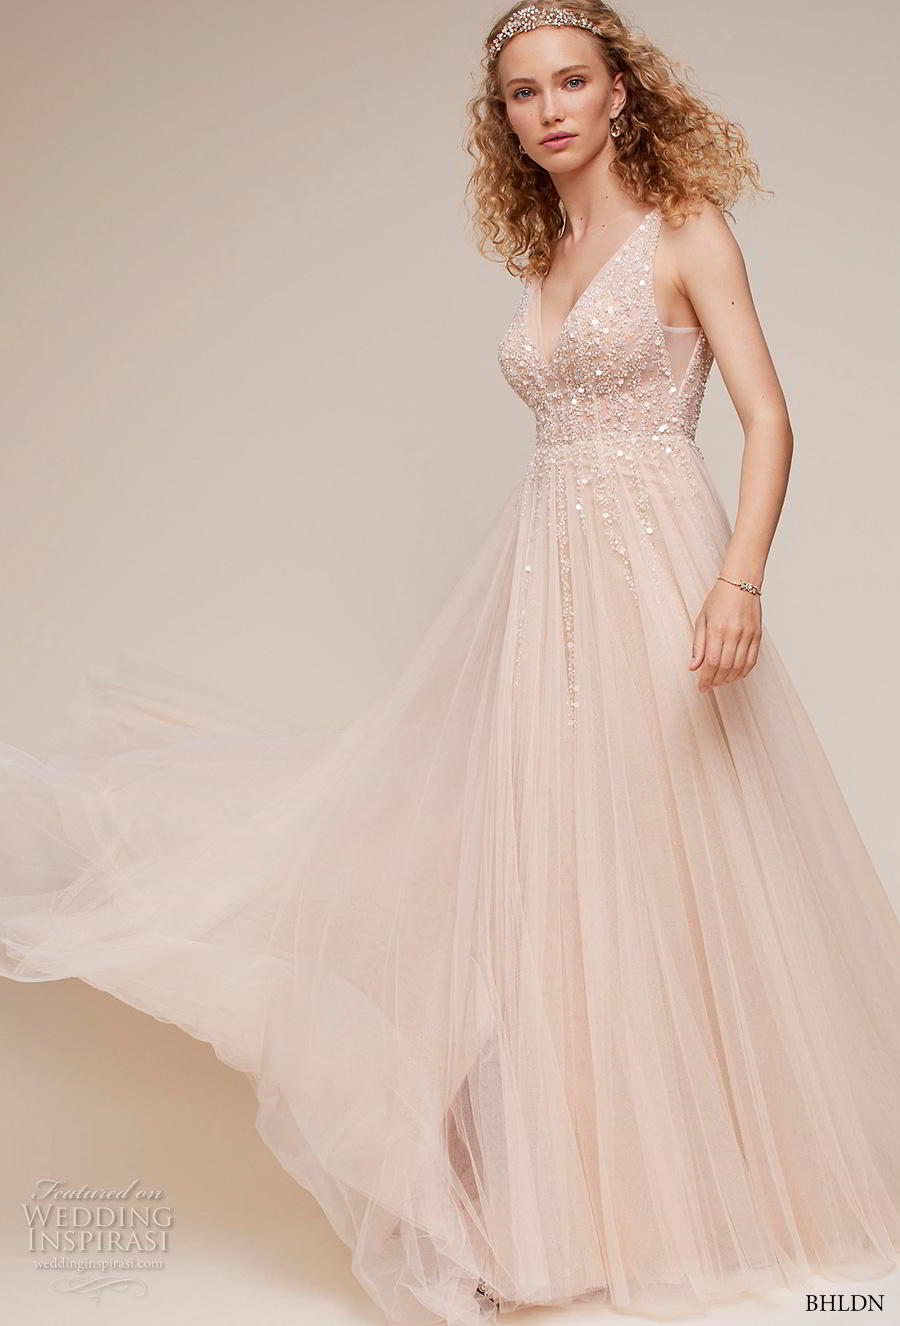 bhldn 2018 own bridal sleeveless v neck heavily embellished bodice tulle skirt glitzy romantic blush soft a  line wedding dress backless scoop back chapel train (6) mv